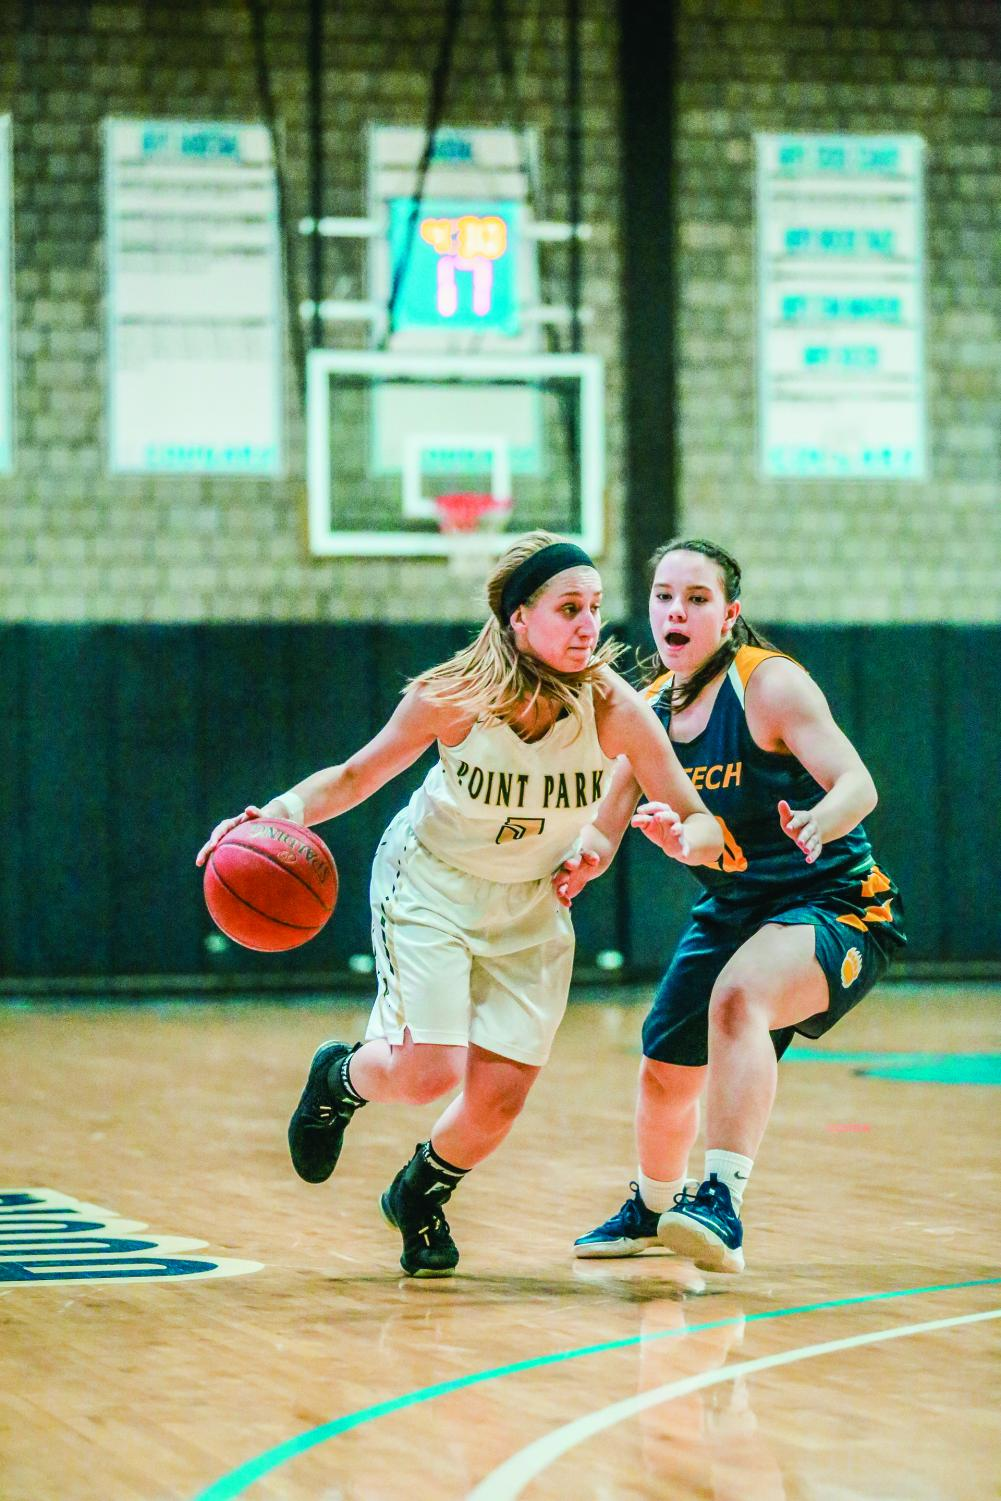 Junior guard Baylie Mook dribbles around a defender during a match-up against WVU Tech earlier this month. The women's team is now 6-11 overall on the year and 2-4 in conference play.